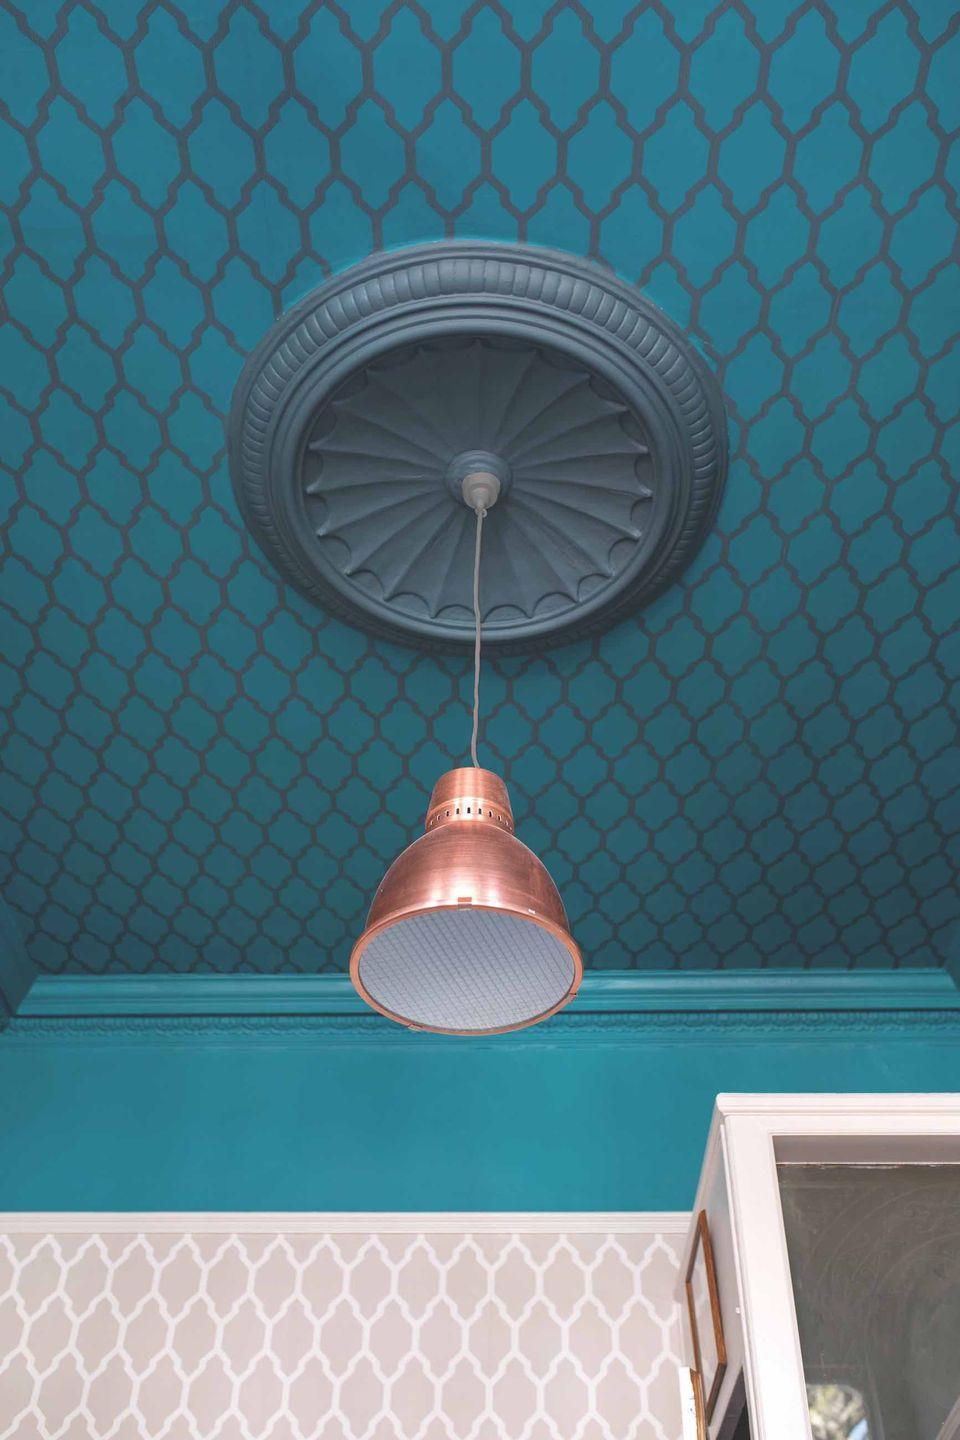 """<p>Don't forget about the ceiling. It's often just painted white and forgotten about, but decorating the ceiling can make a huge difference to a living room. Complete the look with a complementary wallpaper as seen here, or use something completely different.</p><p>Pictured: Tessella BP3608 on the ceiling and BP3601 on the walls, both <a href=""""https://go.redirectingat.com?id=127X1599956&url=https%3A%2F%2Fwww.farrow-ball.com%2Fwallpaper%2Ftessella&sref=https%3A%2F%2Fwww.housebeautiful.com%2Fuk%2Fdecorate%2Fliving-room%2Fg35838996%2Fliving-room-wallpaper-ideas%2F"""" rel=""""nofollow noopener"""" target=""""_blank"""" data-ylk=""""slk:Farrow & Ball"""" class=""""link rapid-noclick-resp"""">Farrow & Ball</a></p>"""